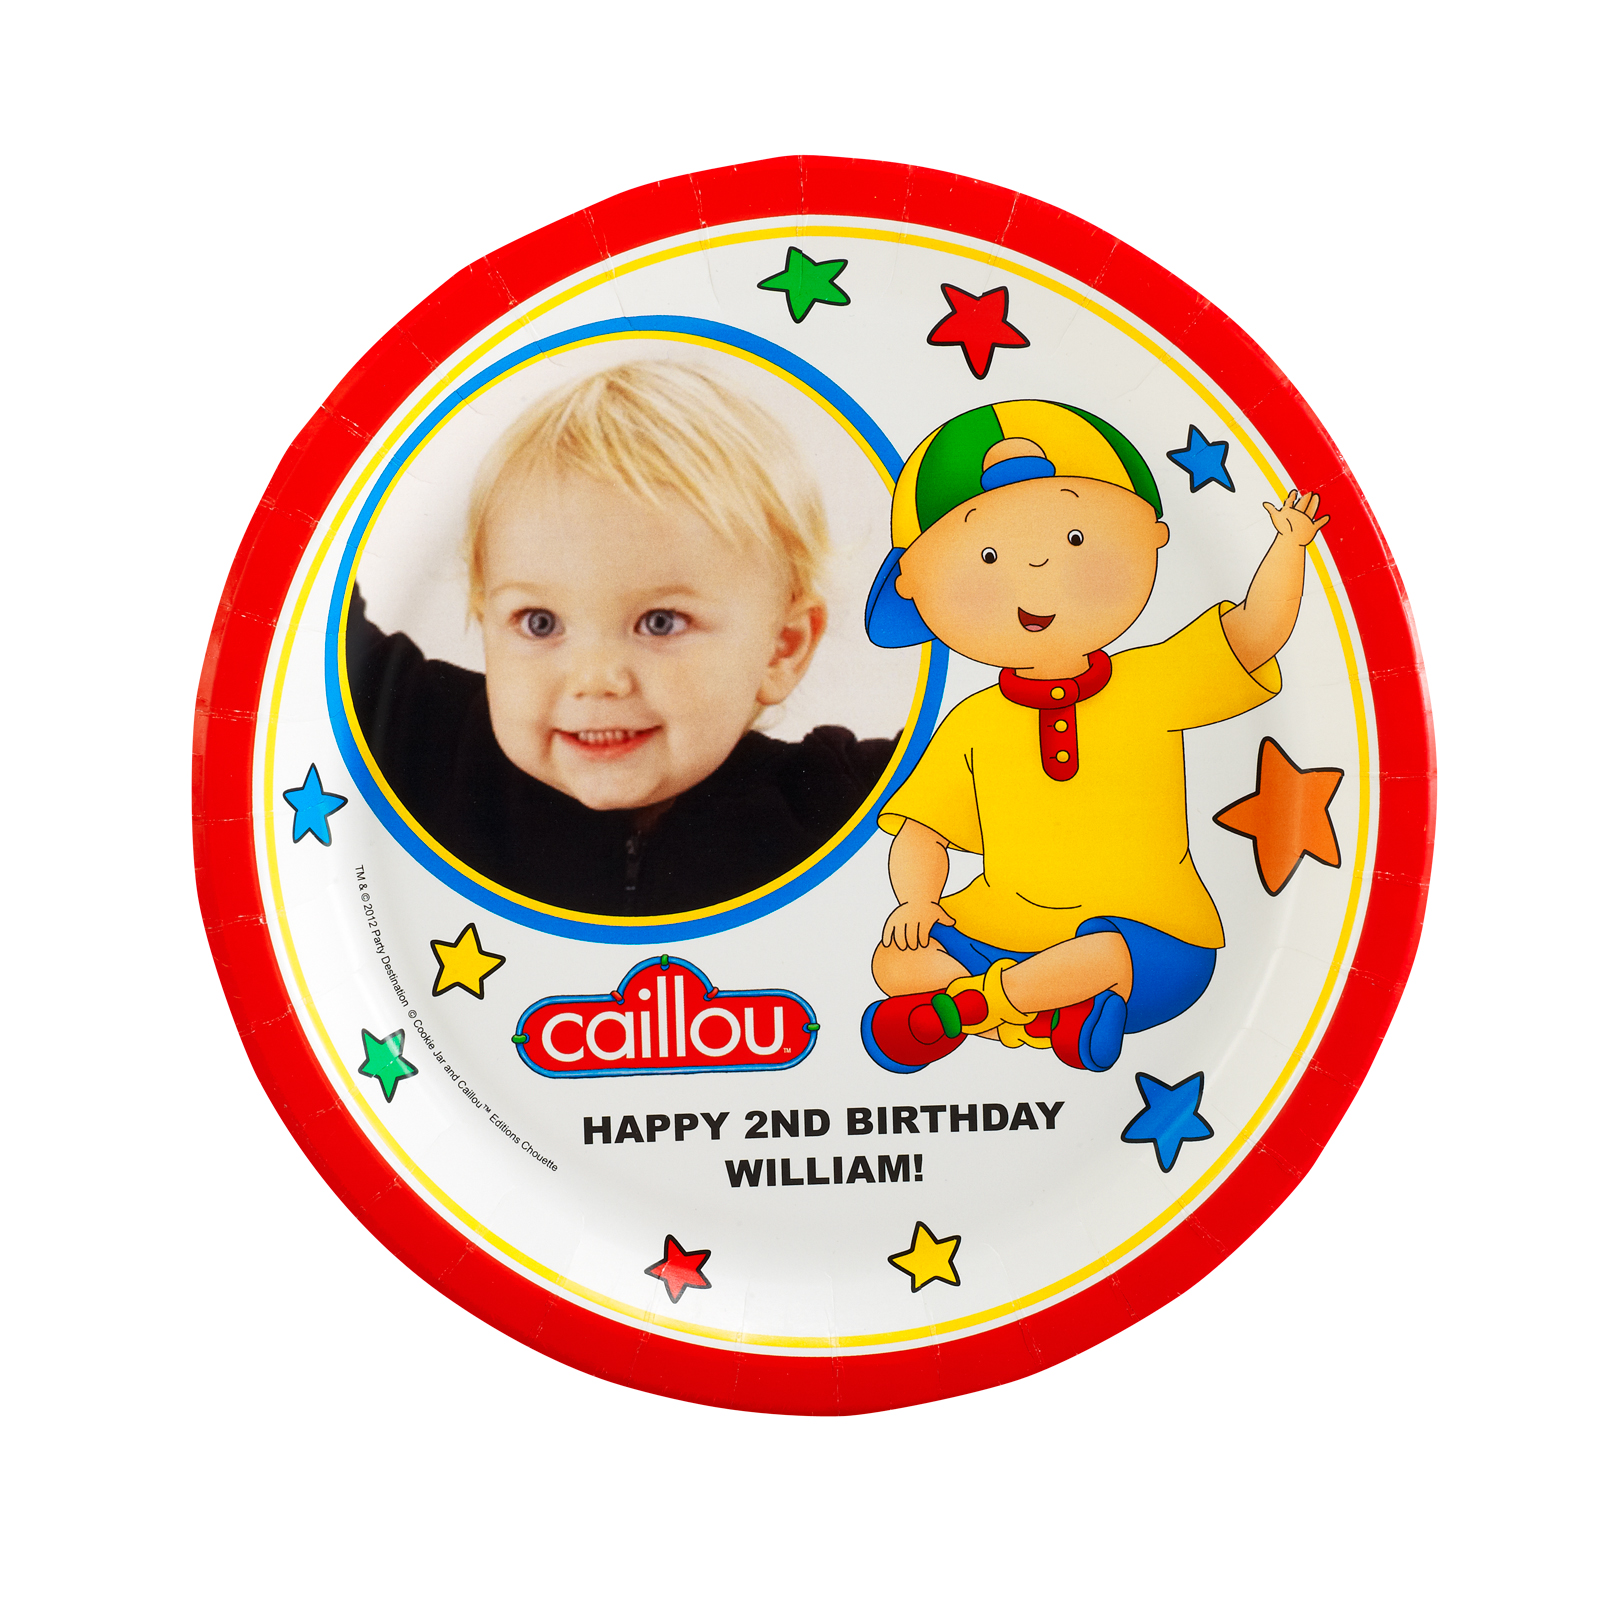 Caillou Personalized Dinner Plates  sc 1 st  Birthday Express & Caillou Personalized Dinner Plates | BirthdayExpress.com